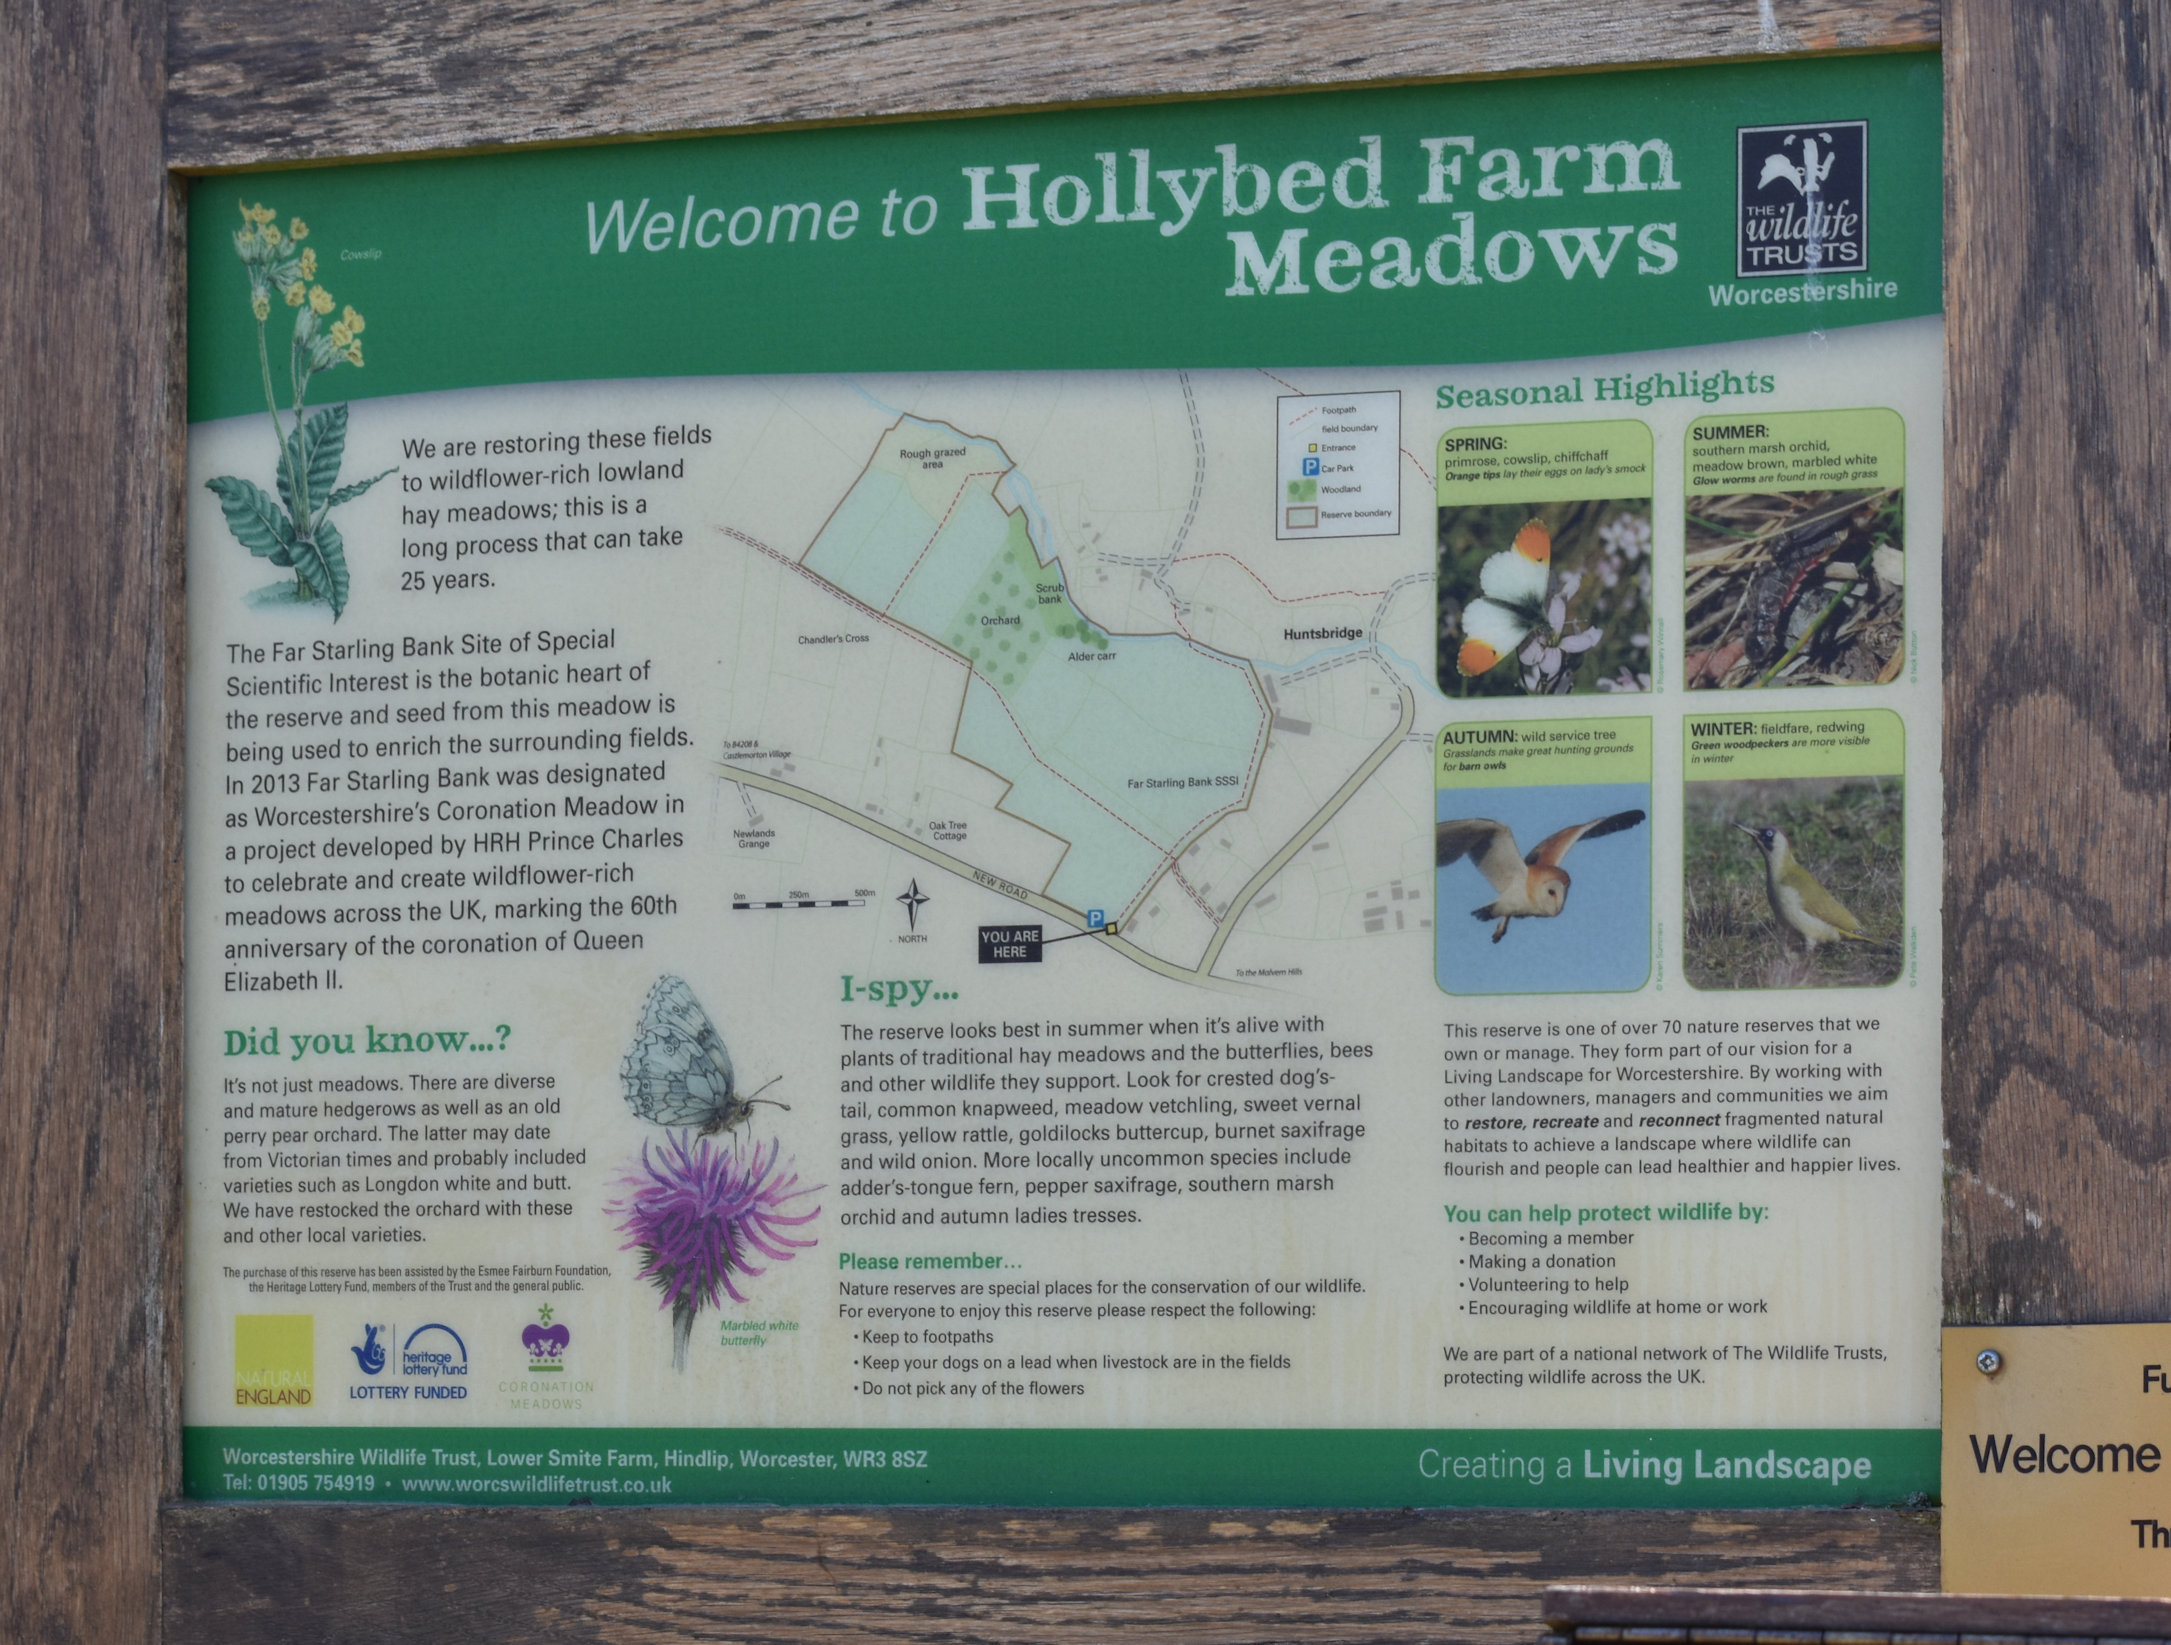 Hollybed